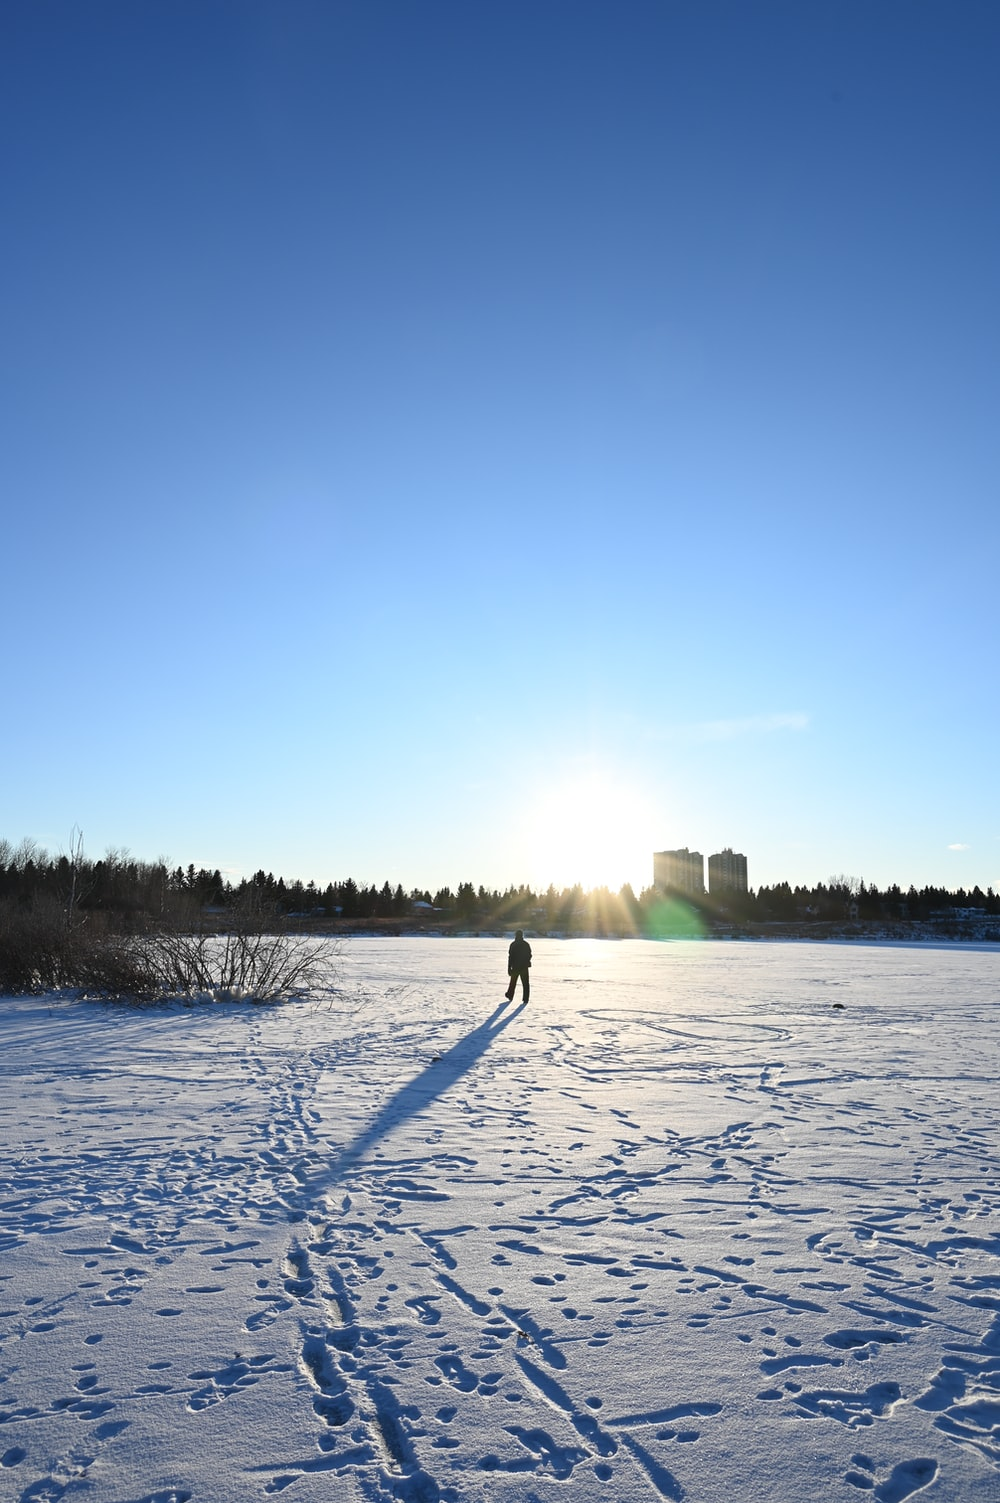 person standing on snow covered ground during daytime